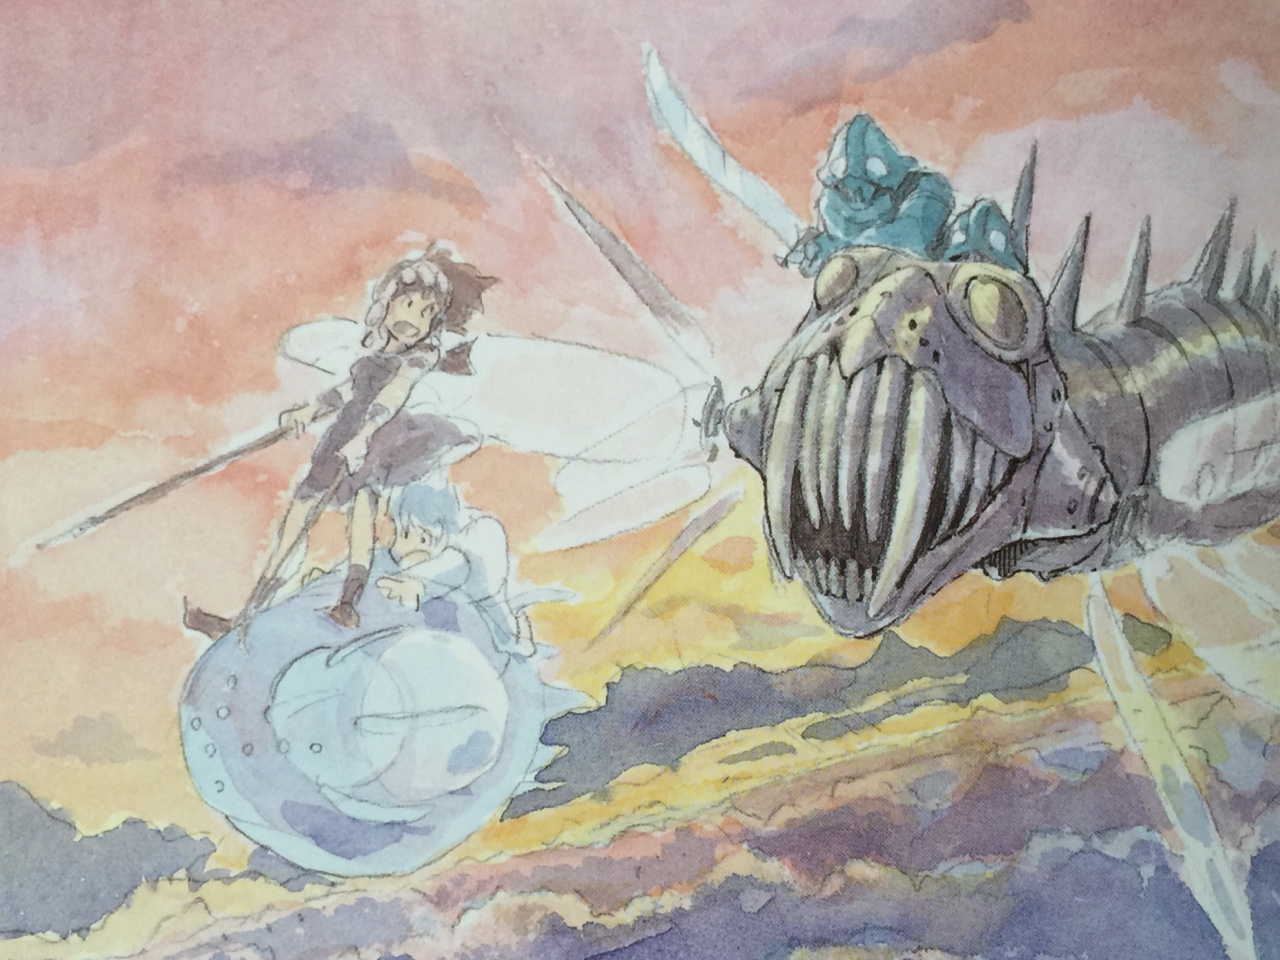 Hayao-Miyazaki-The-Art-of-Nausica-Of-The-Valley-Of-The-Wind-Watercolor-Impressions-nausicaa-of-the-valley-of-the-wind-39115020-1280-960.jpg